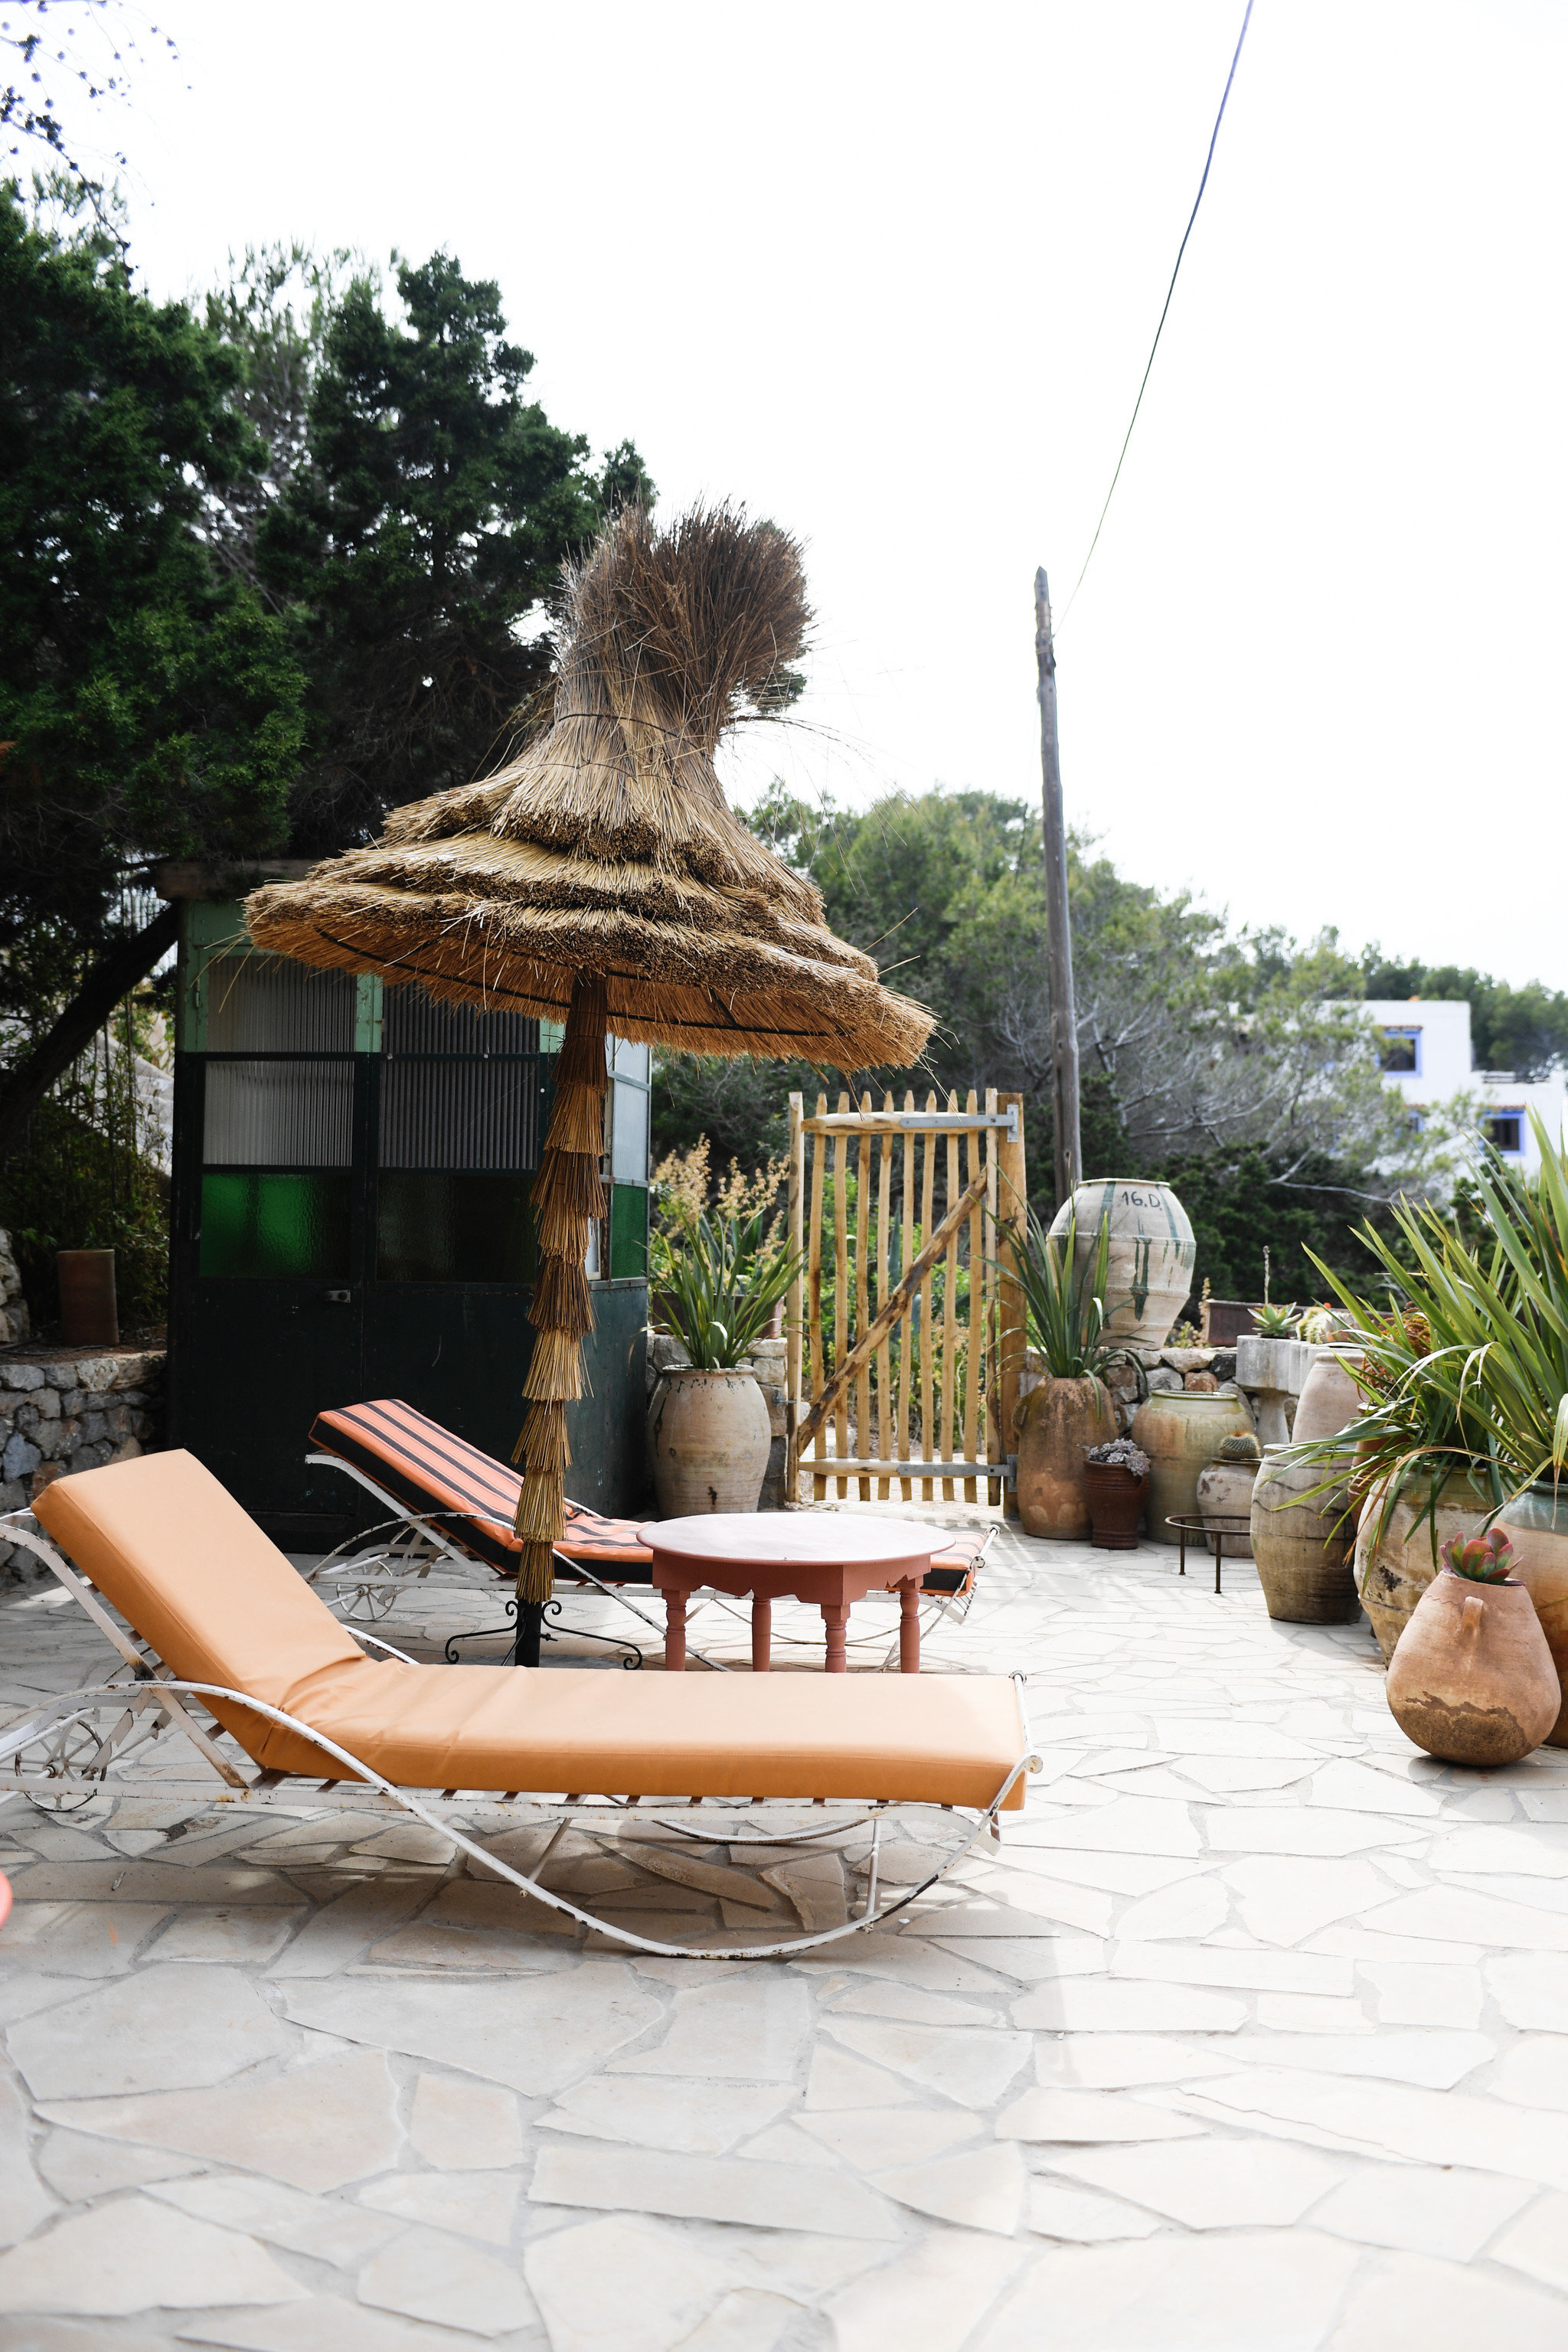 Boutique Hotels Hotels tree outdoor outdoor structure plant gazebo table outdoor furniture furniture stone